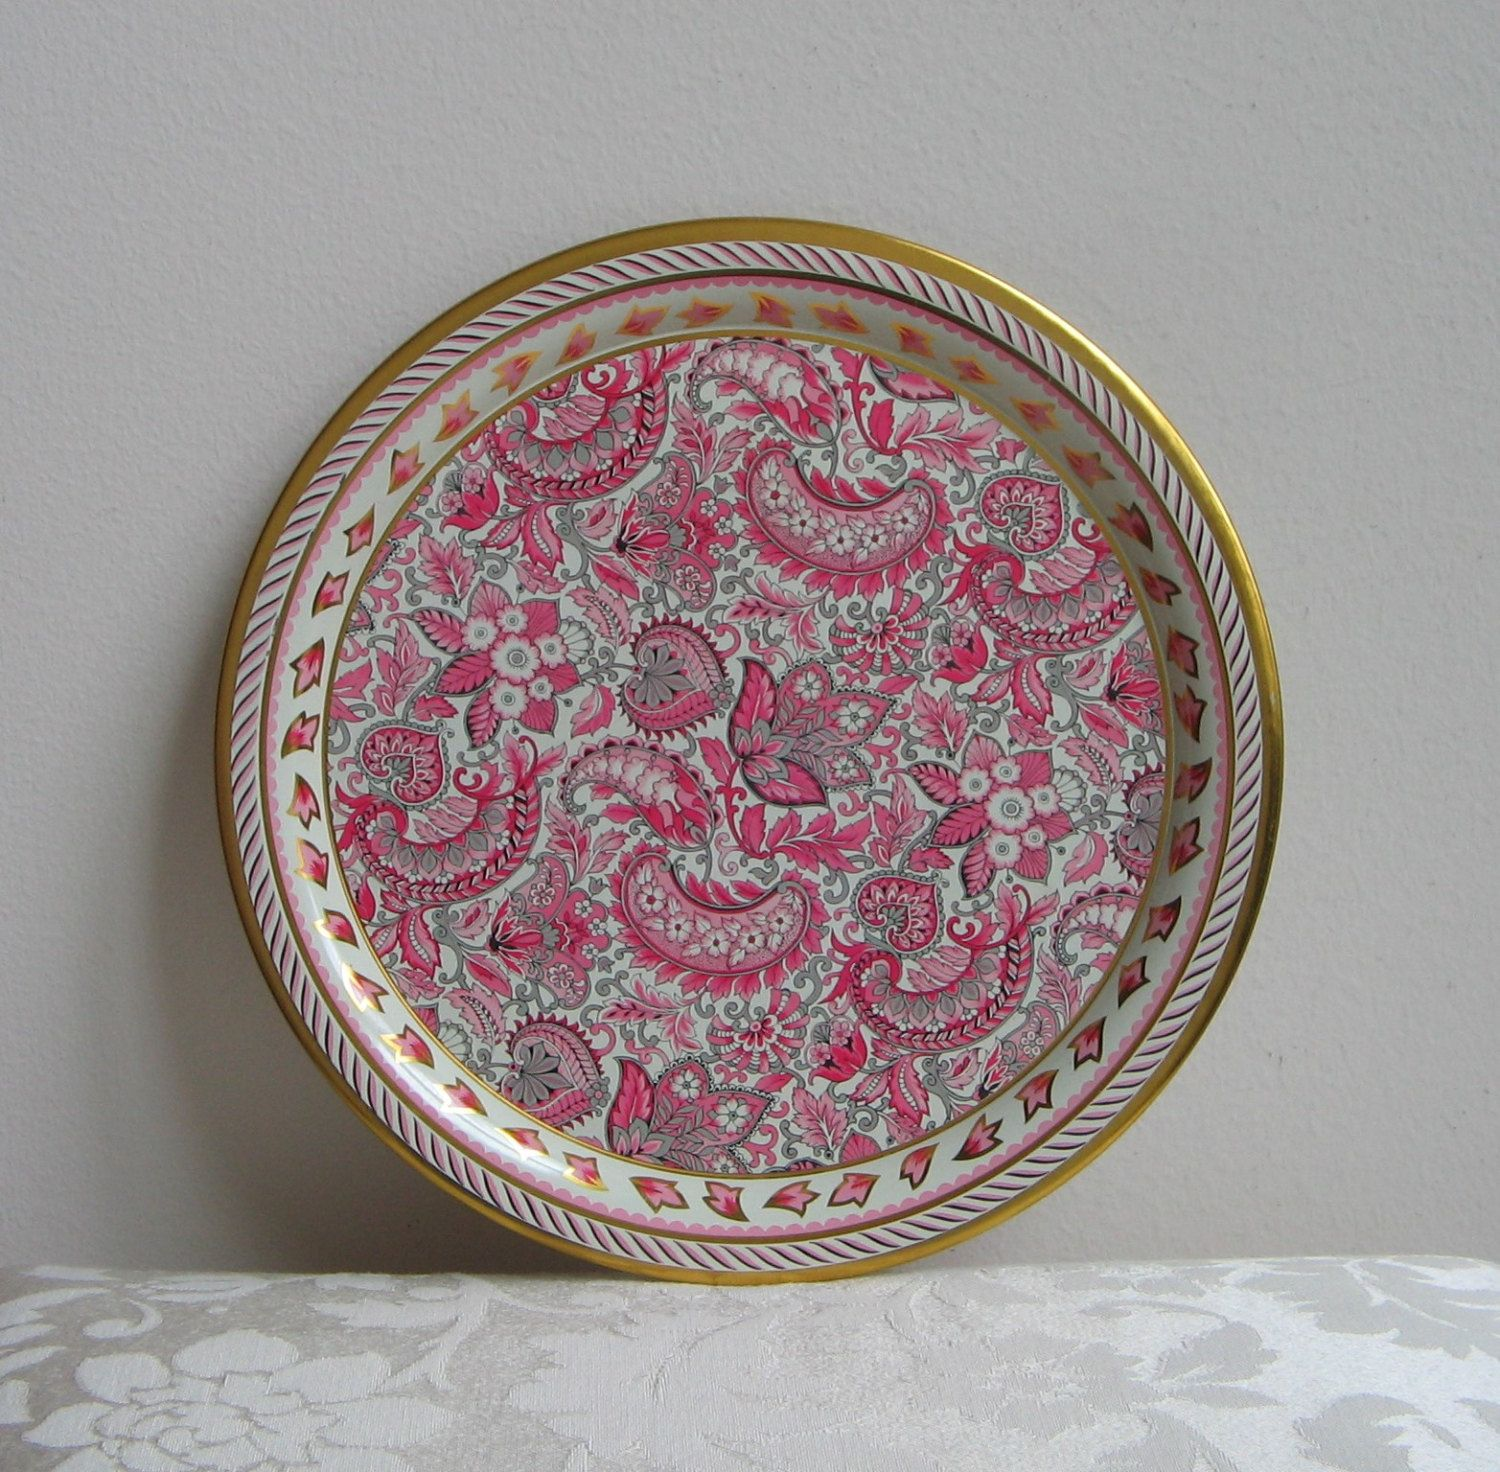 Daher Decorated Ware Tray Made In England Endearing Vintage Pink Metal Round Traydaher Decorated Ware Floral Design Inspiration